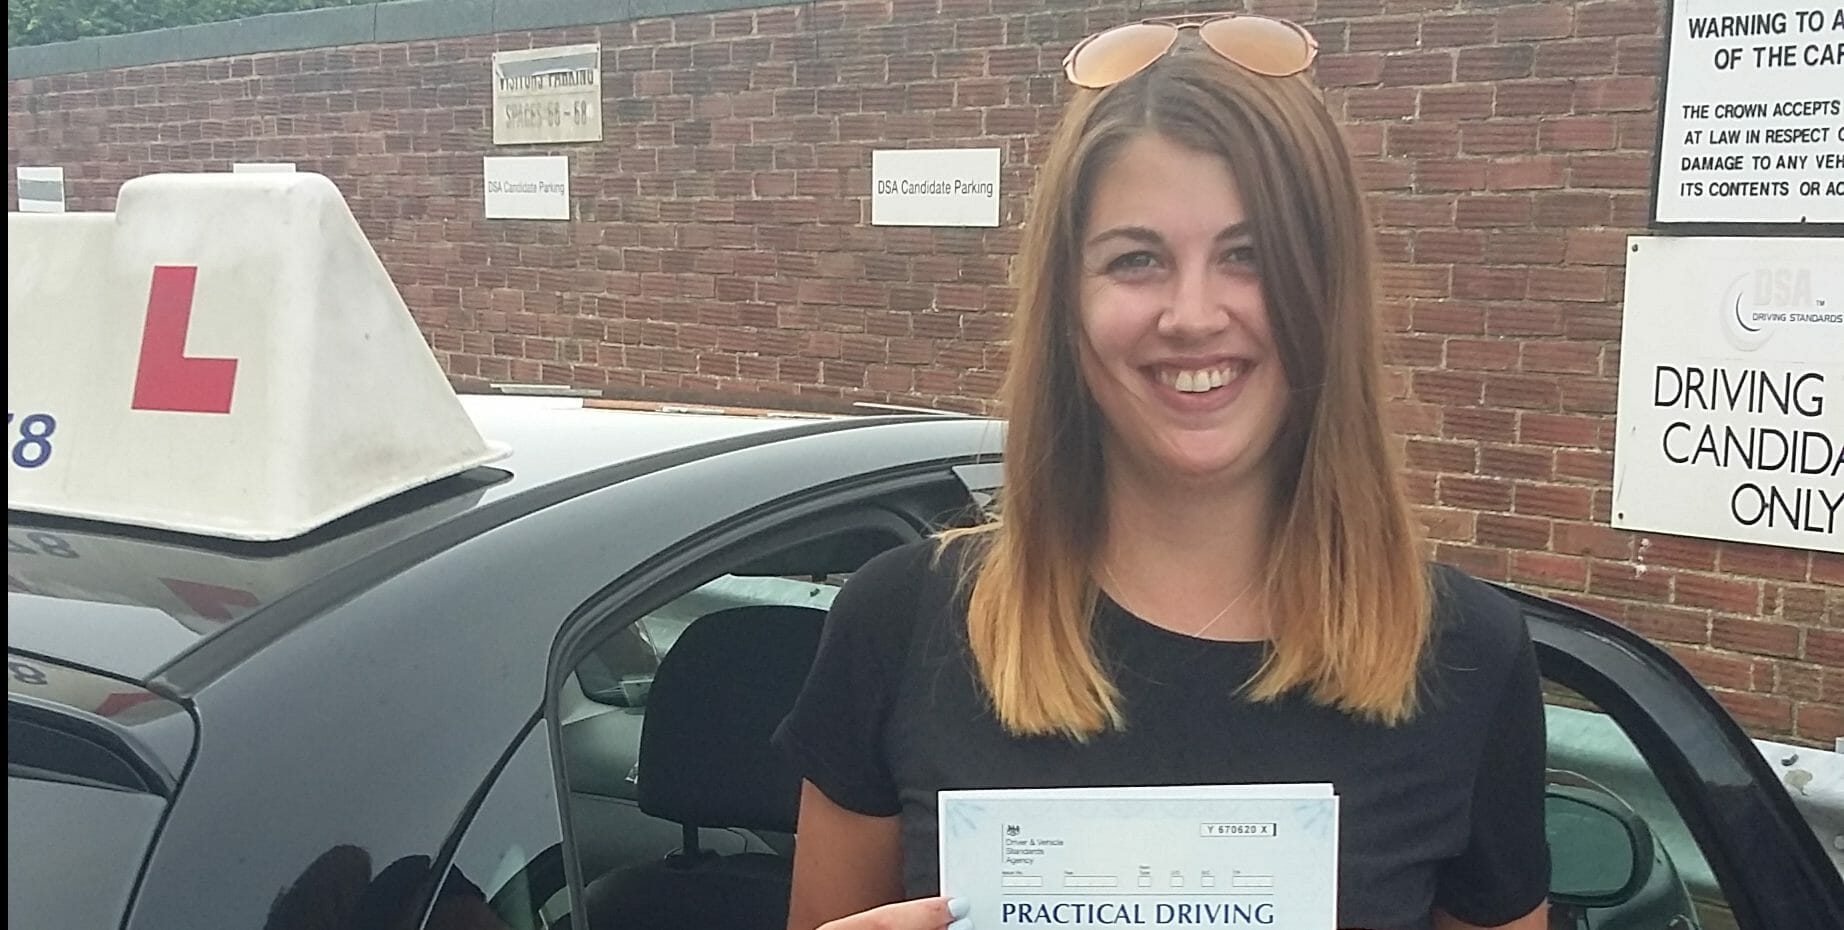 Congratulations to Ashleigh O'Mahony from Worthing